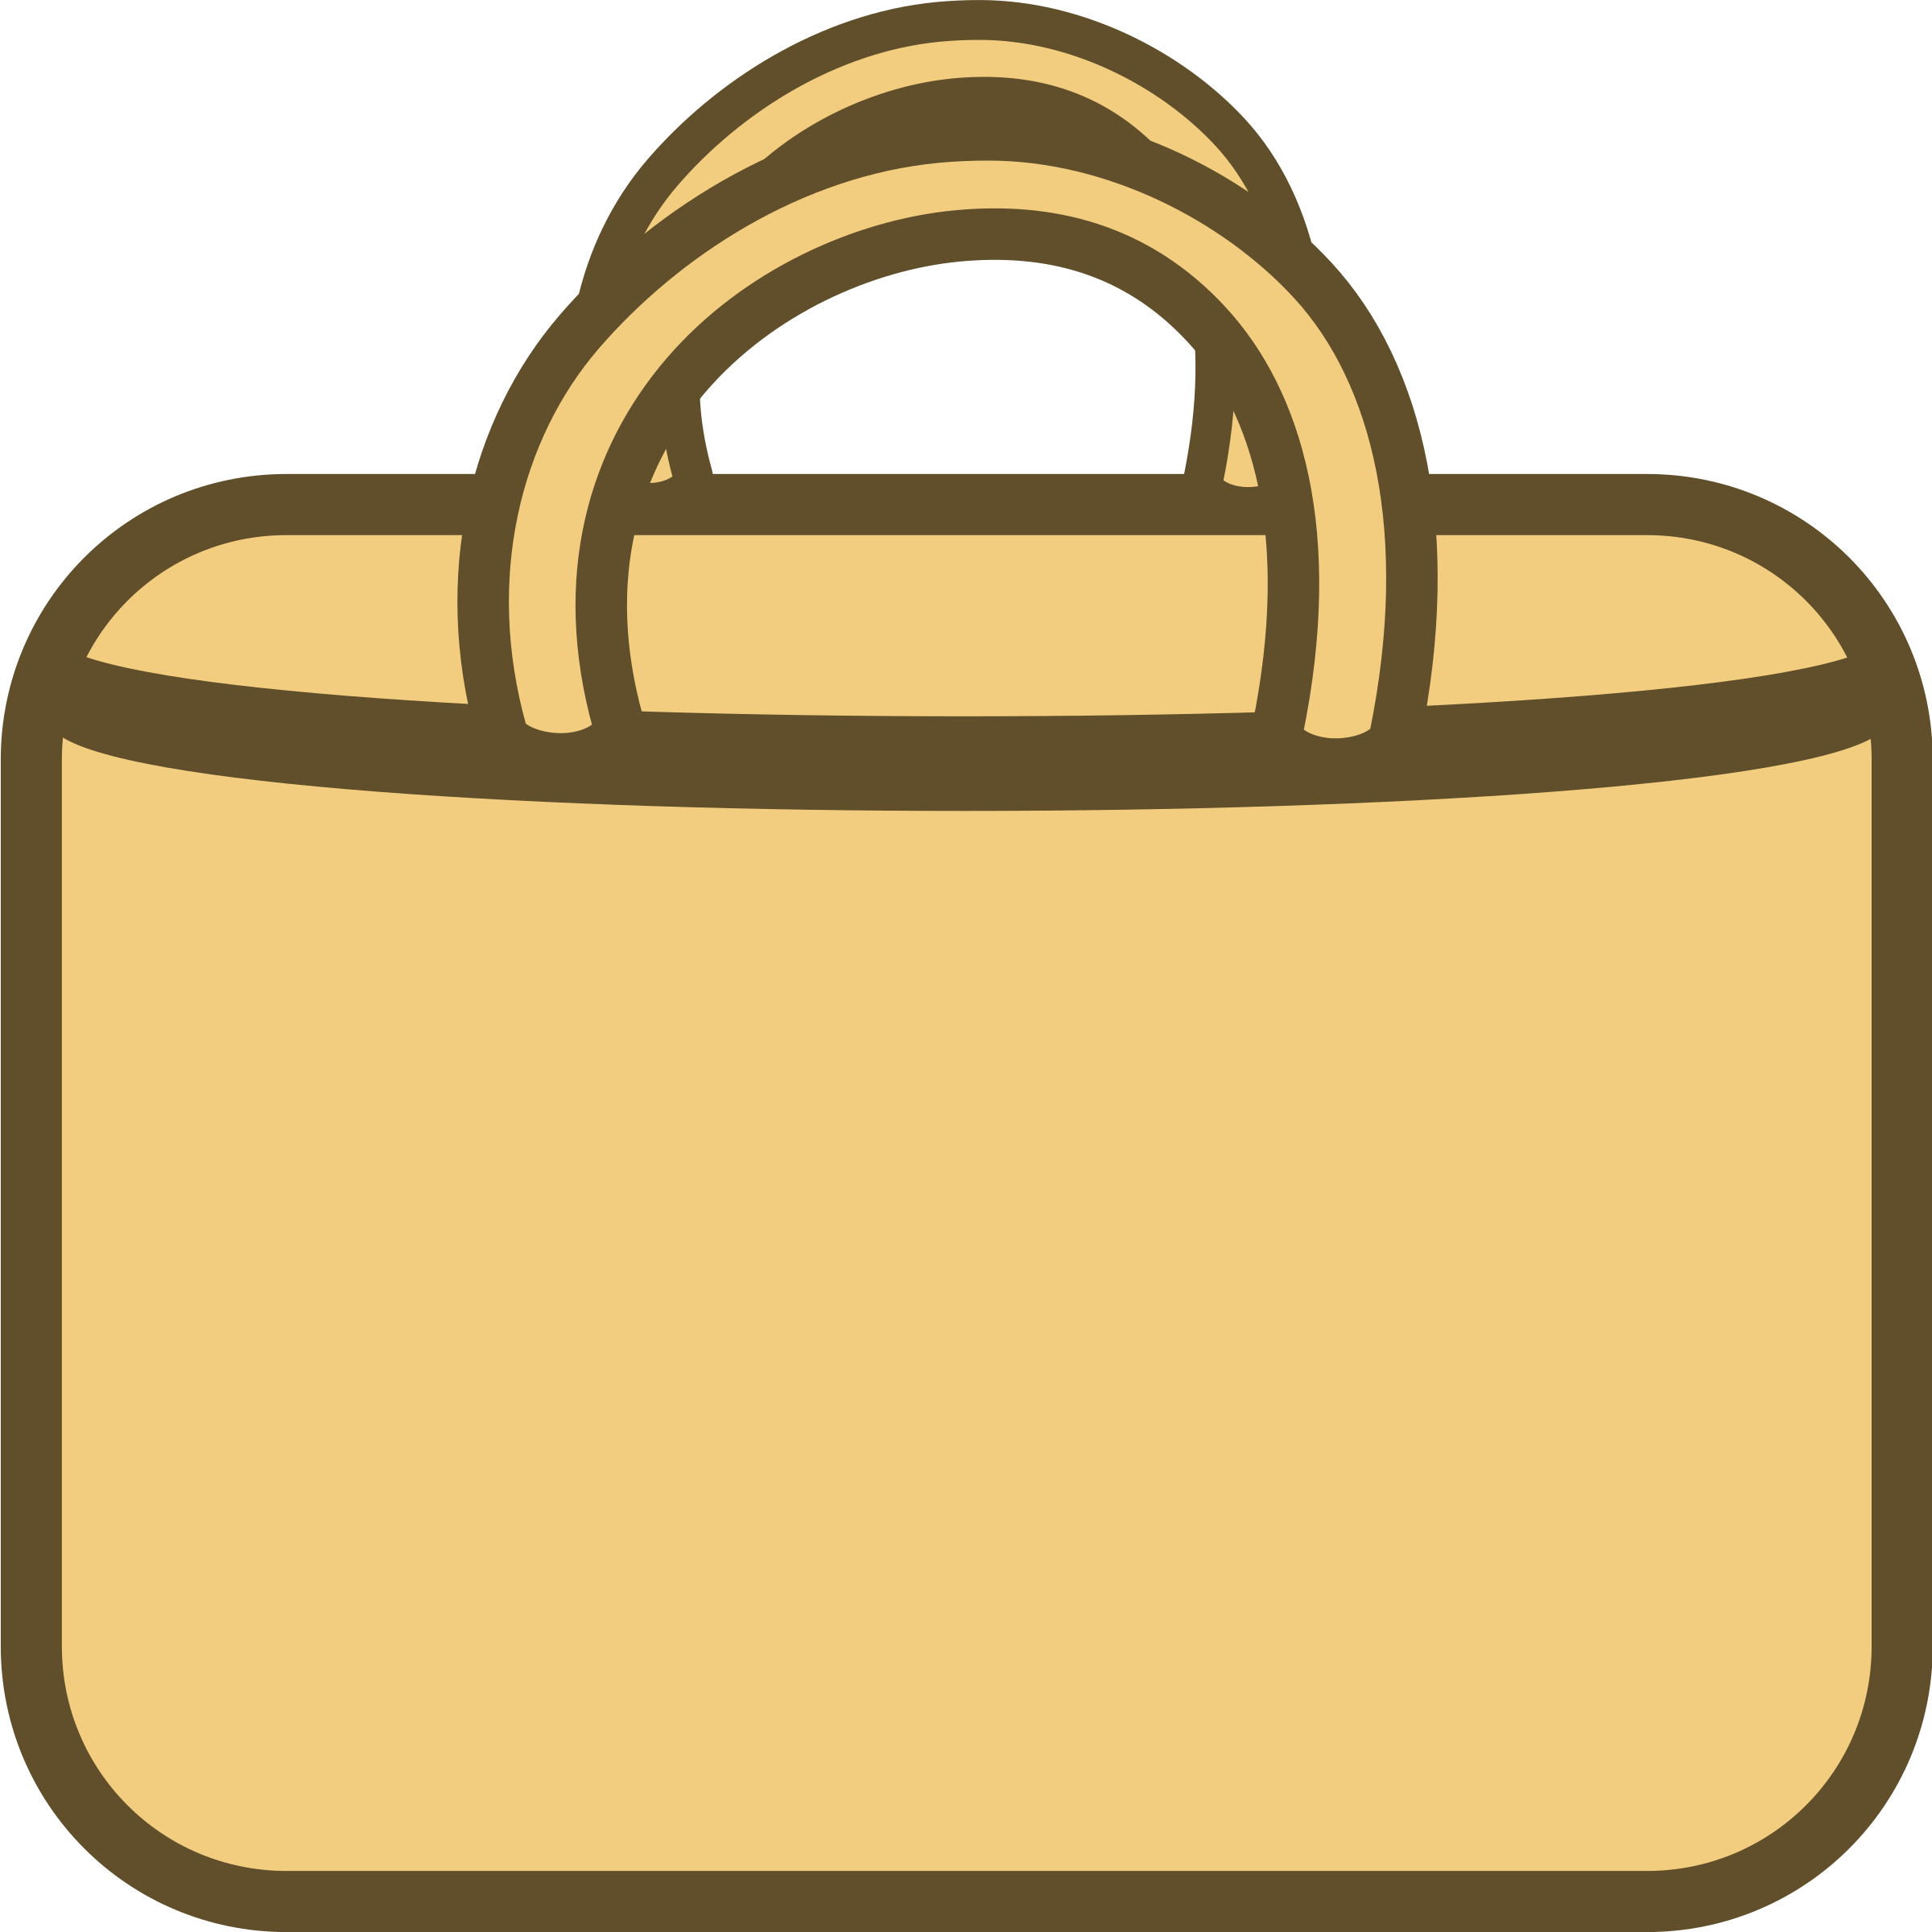 Simple Shopping Bag Logo/Icon by qubodup